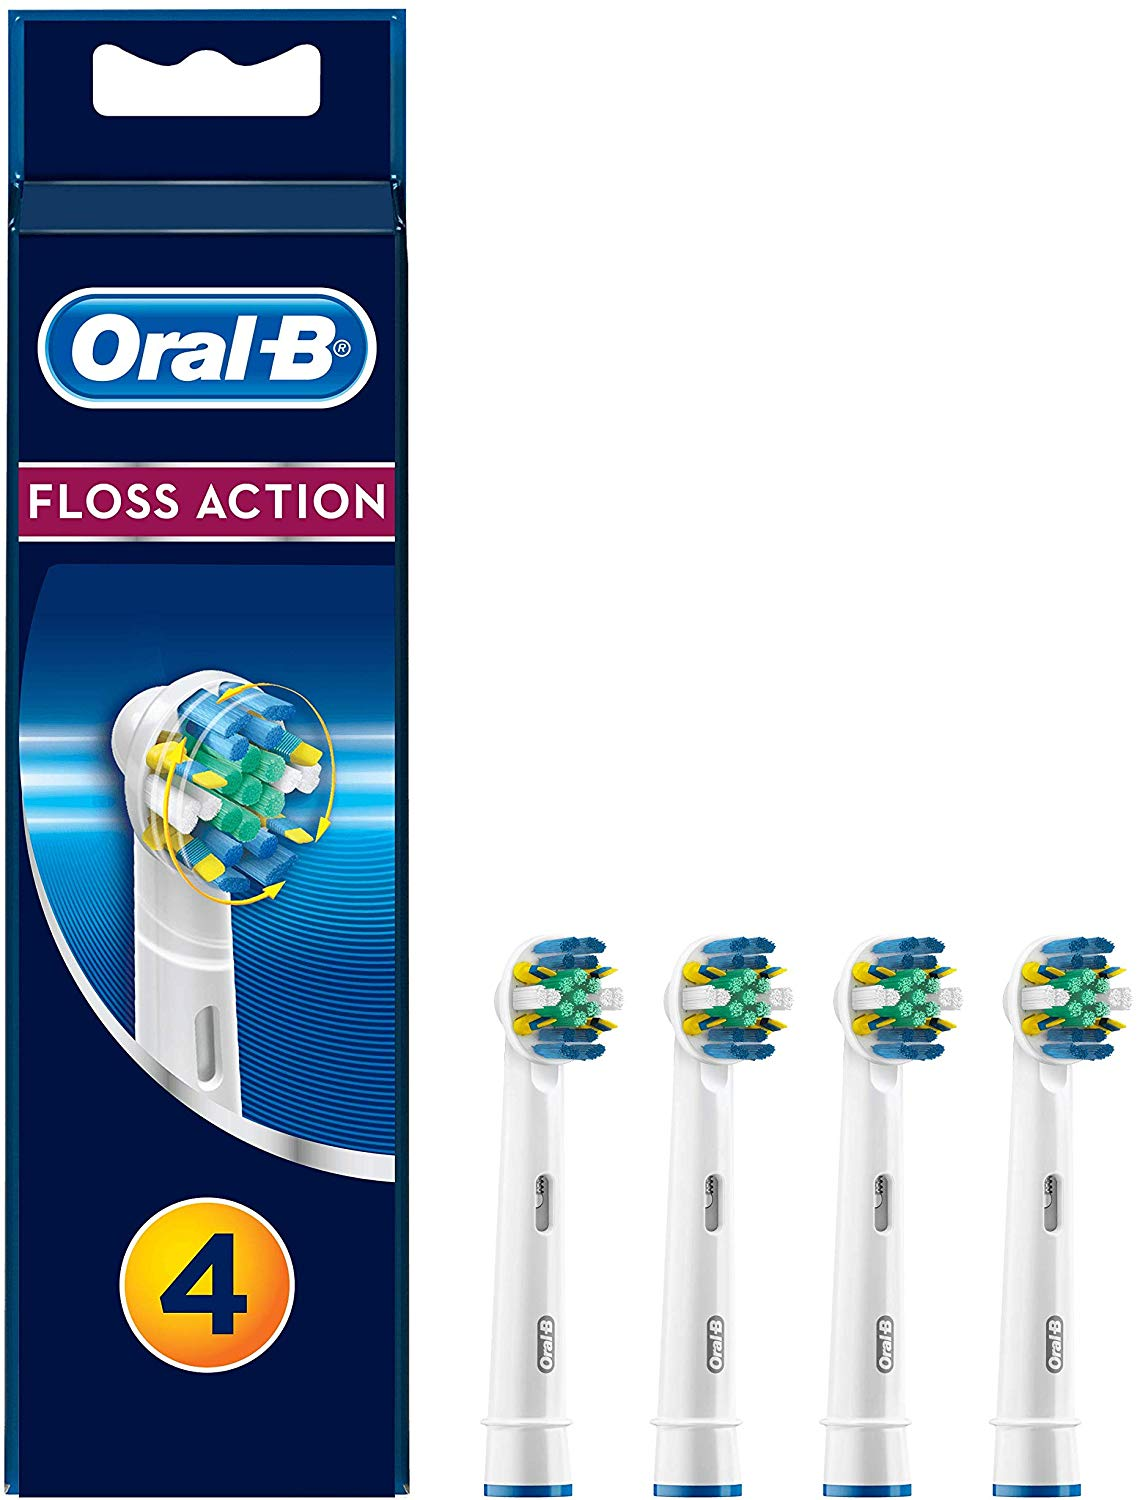 Oral-B Genuine FlossAction Replacement White Toothbrush Heads, Pack of 4